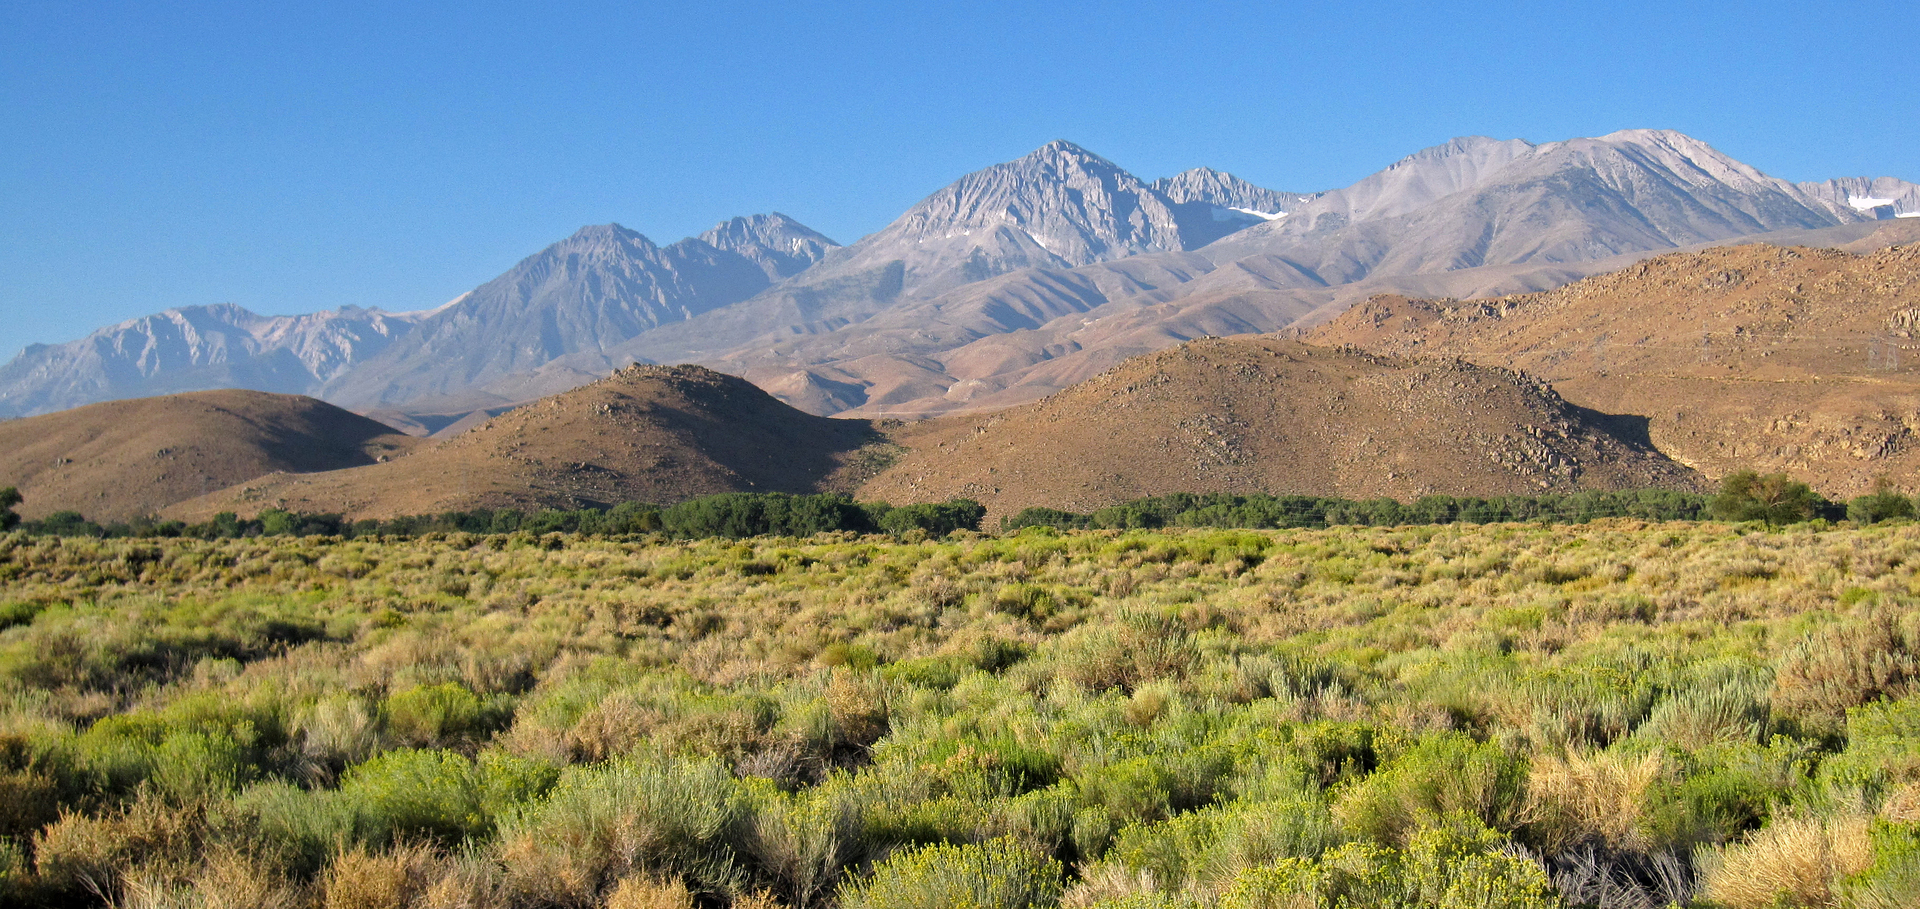 from the Owens Valley, near Big Pine, California